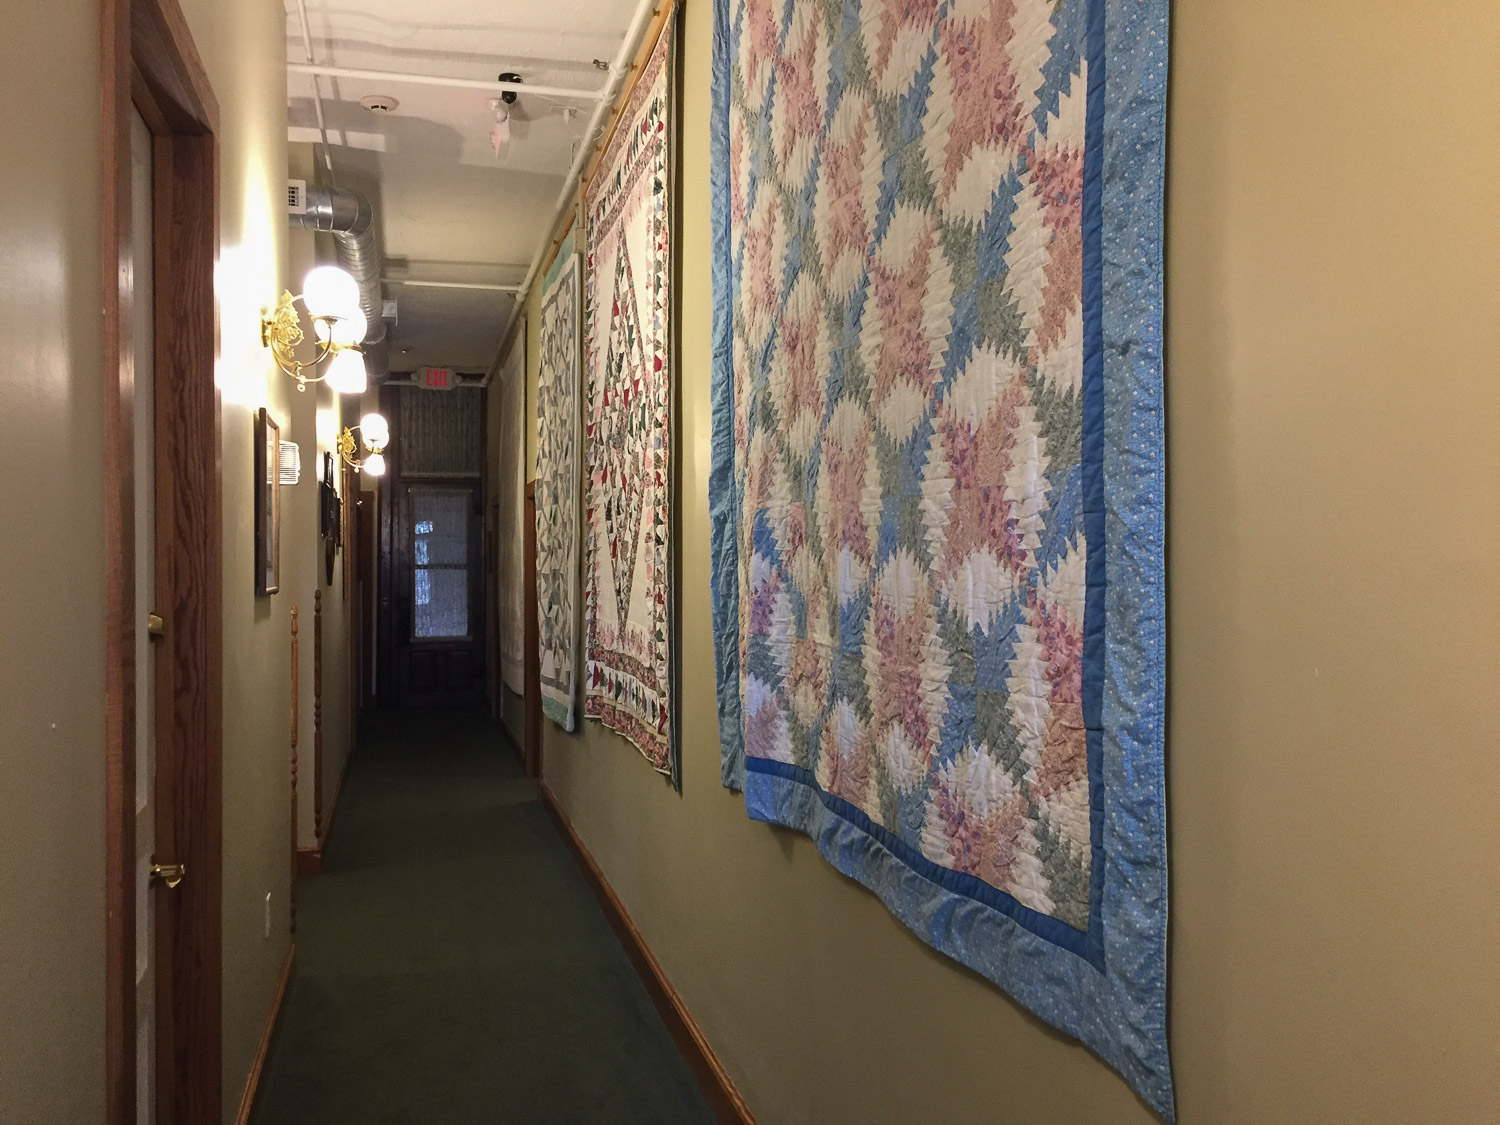 Quilts in the hotel in Millersburg Ohio.